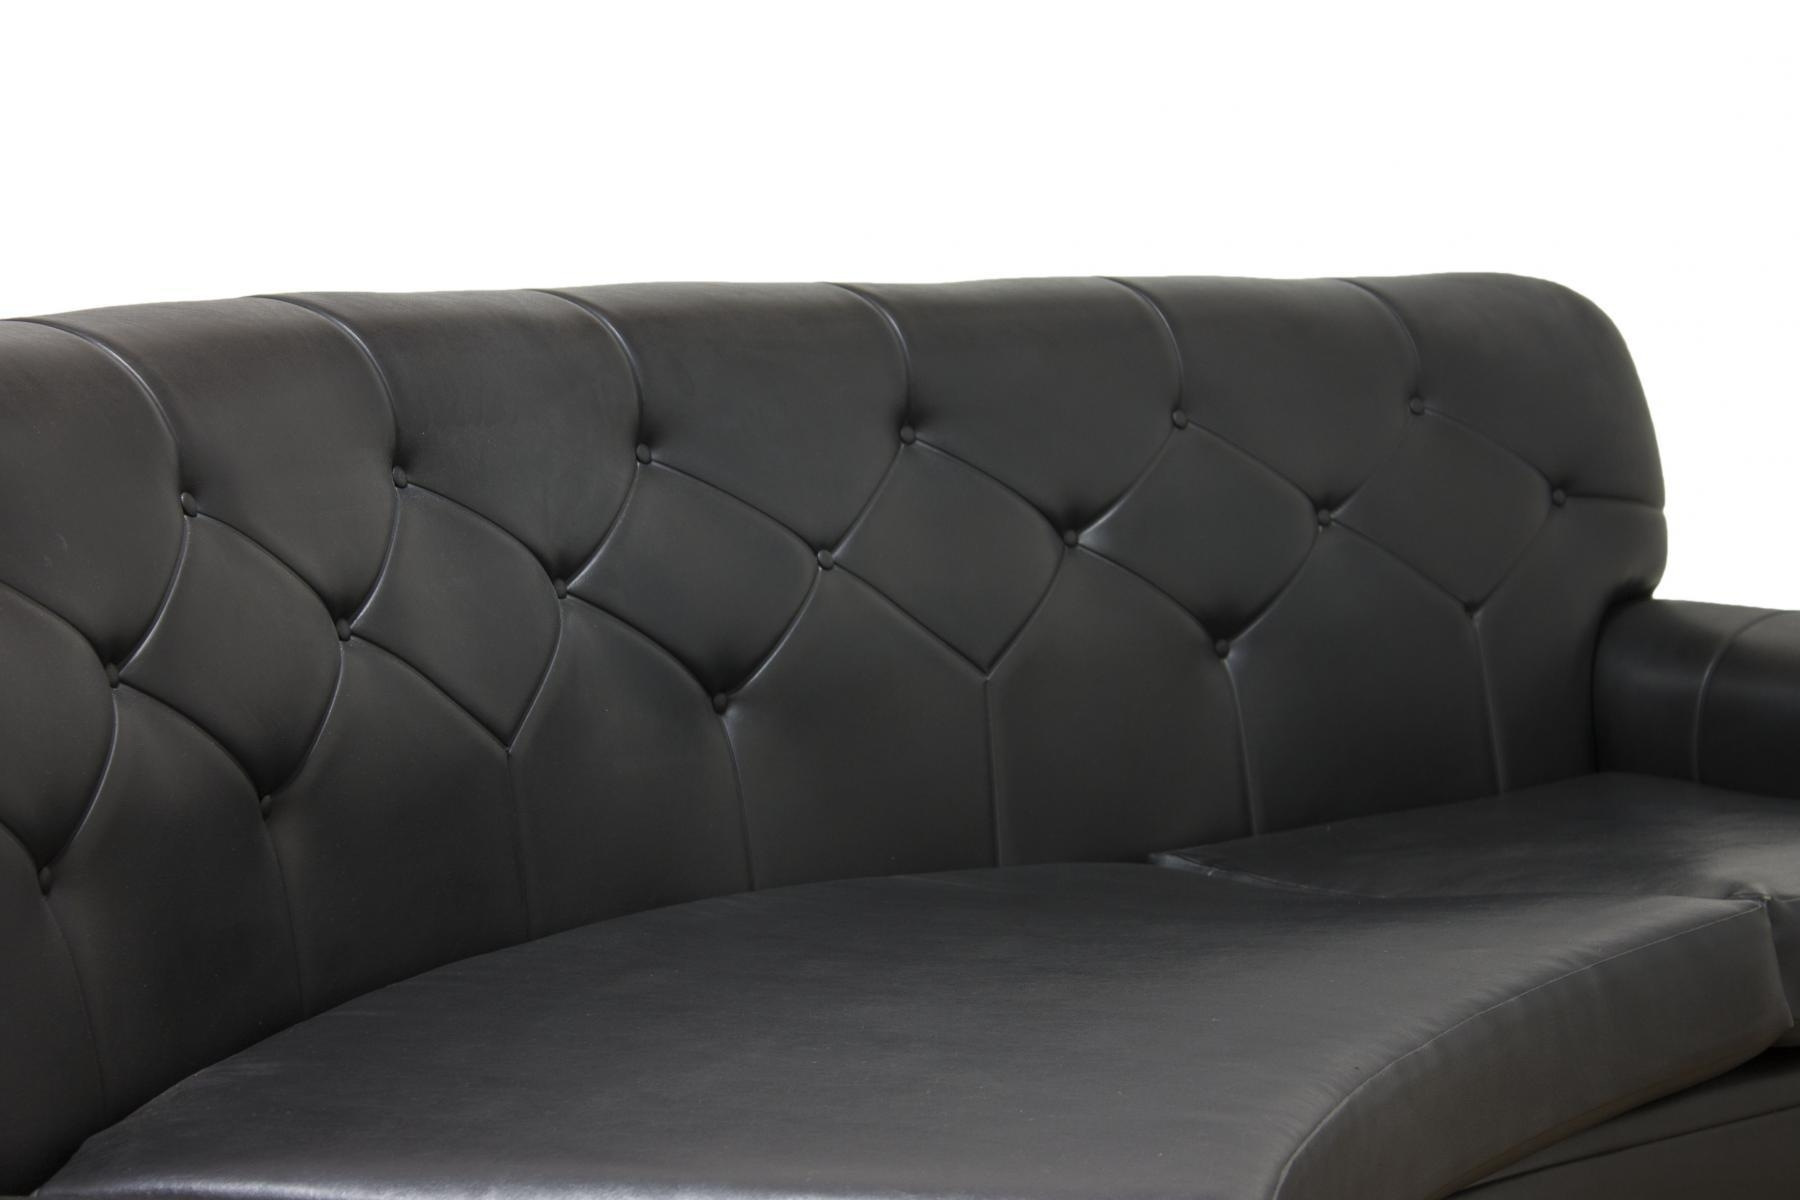 Mid Century Retro Black Vinyl Sofa From G Plan For Sale At Pamono Pertaining To Black Vinyl Sofas (Image 12 of 20)